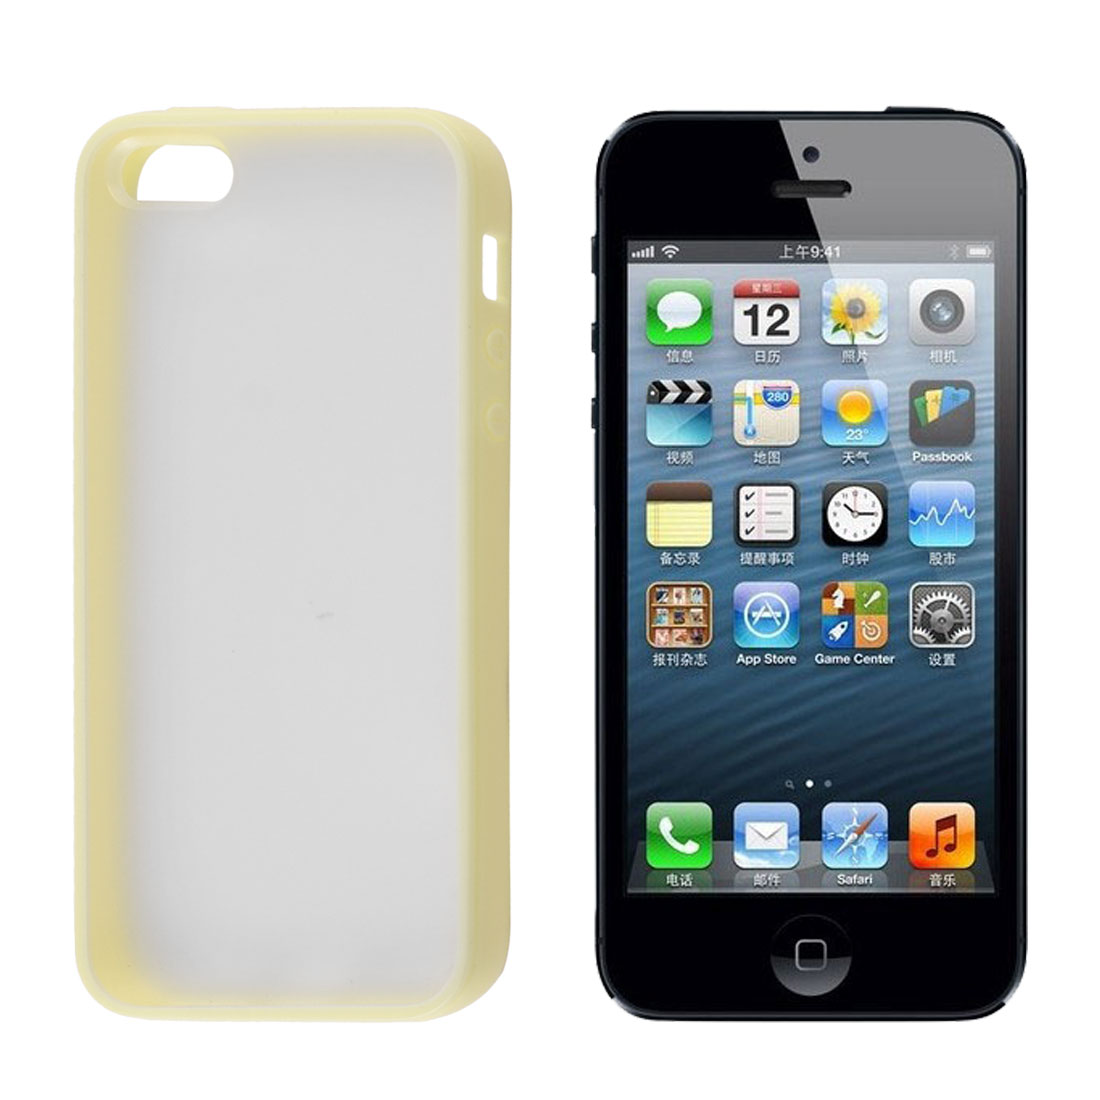 Smooth Surface Yellow TPU Soft Plastic Trim Case Protector for iPhone 5 5G - image 1 of 1